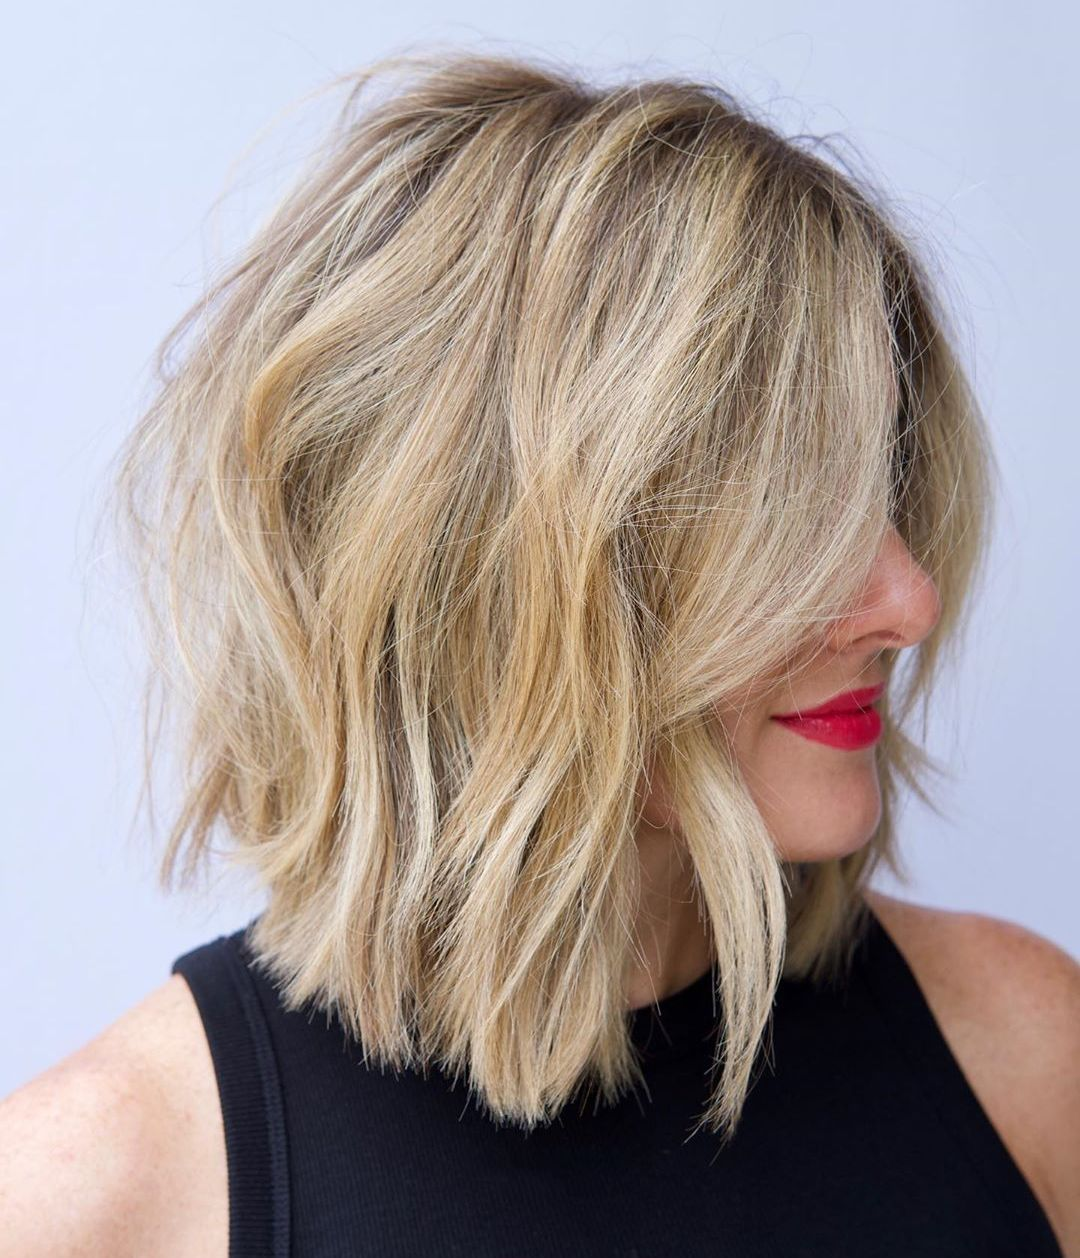 Medium Choppy Bob Hairstyle for Thick Hair